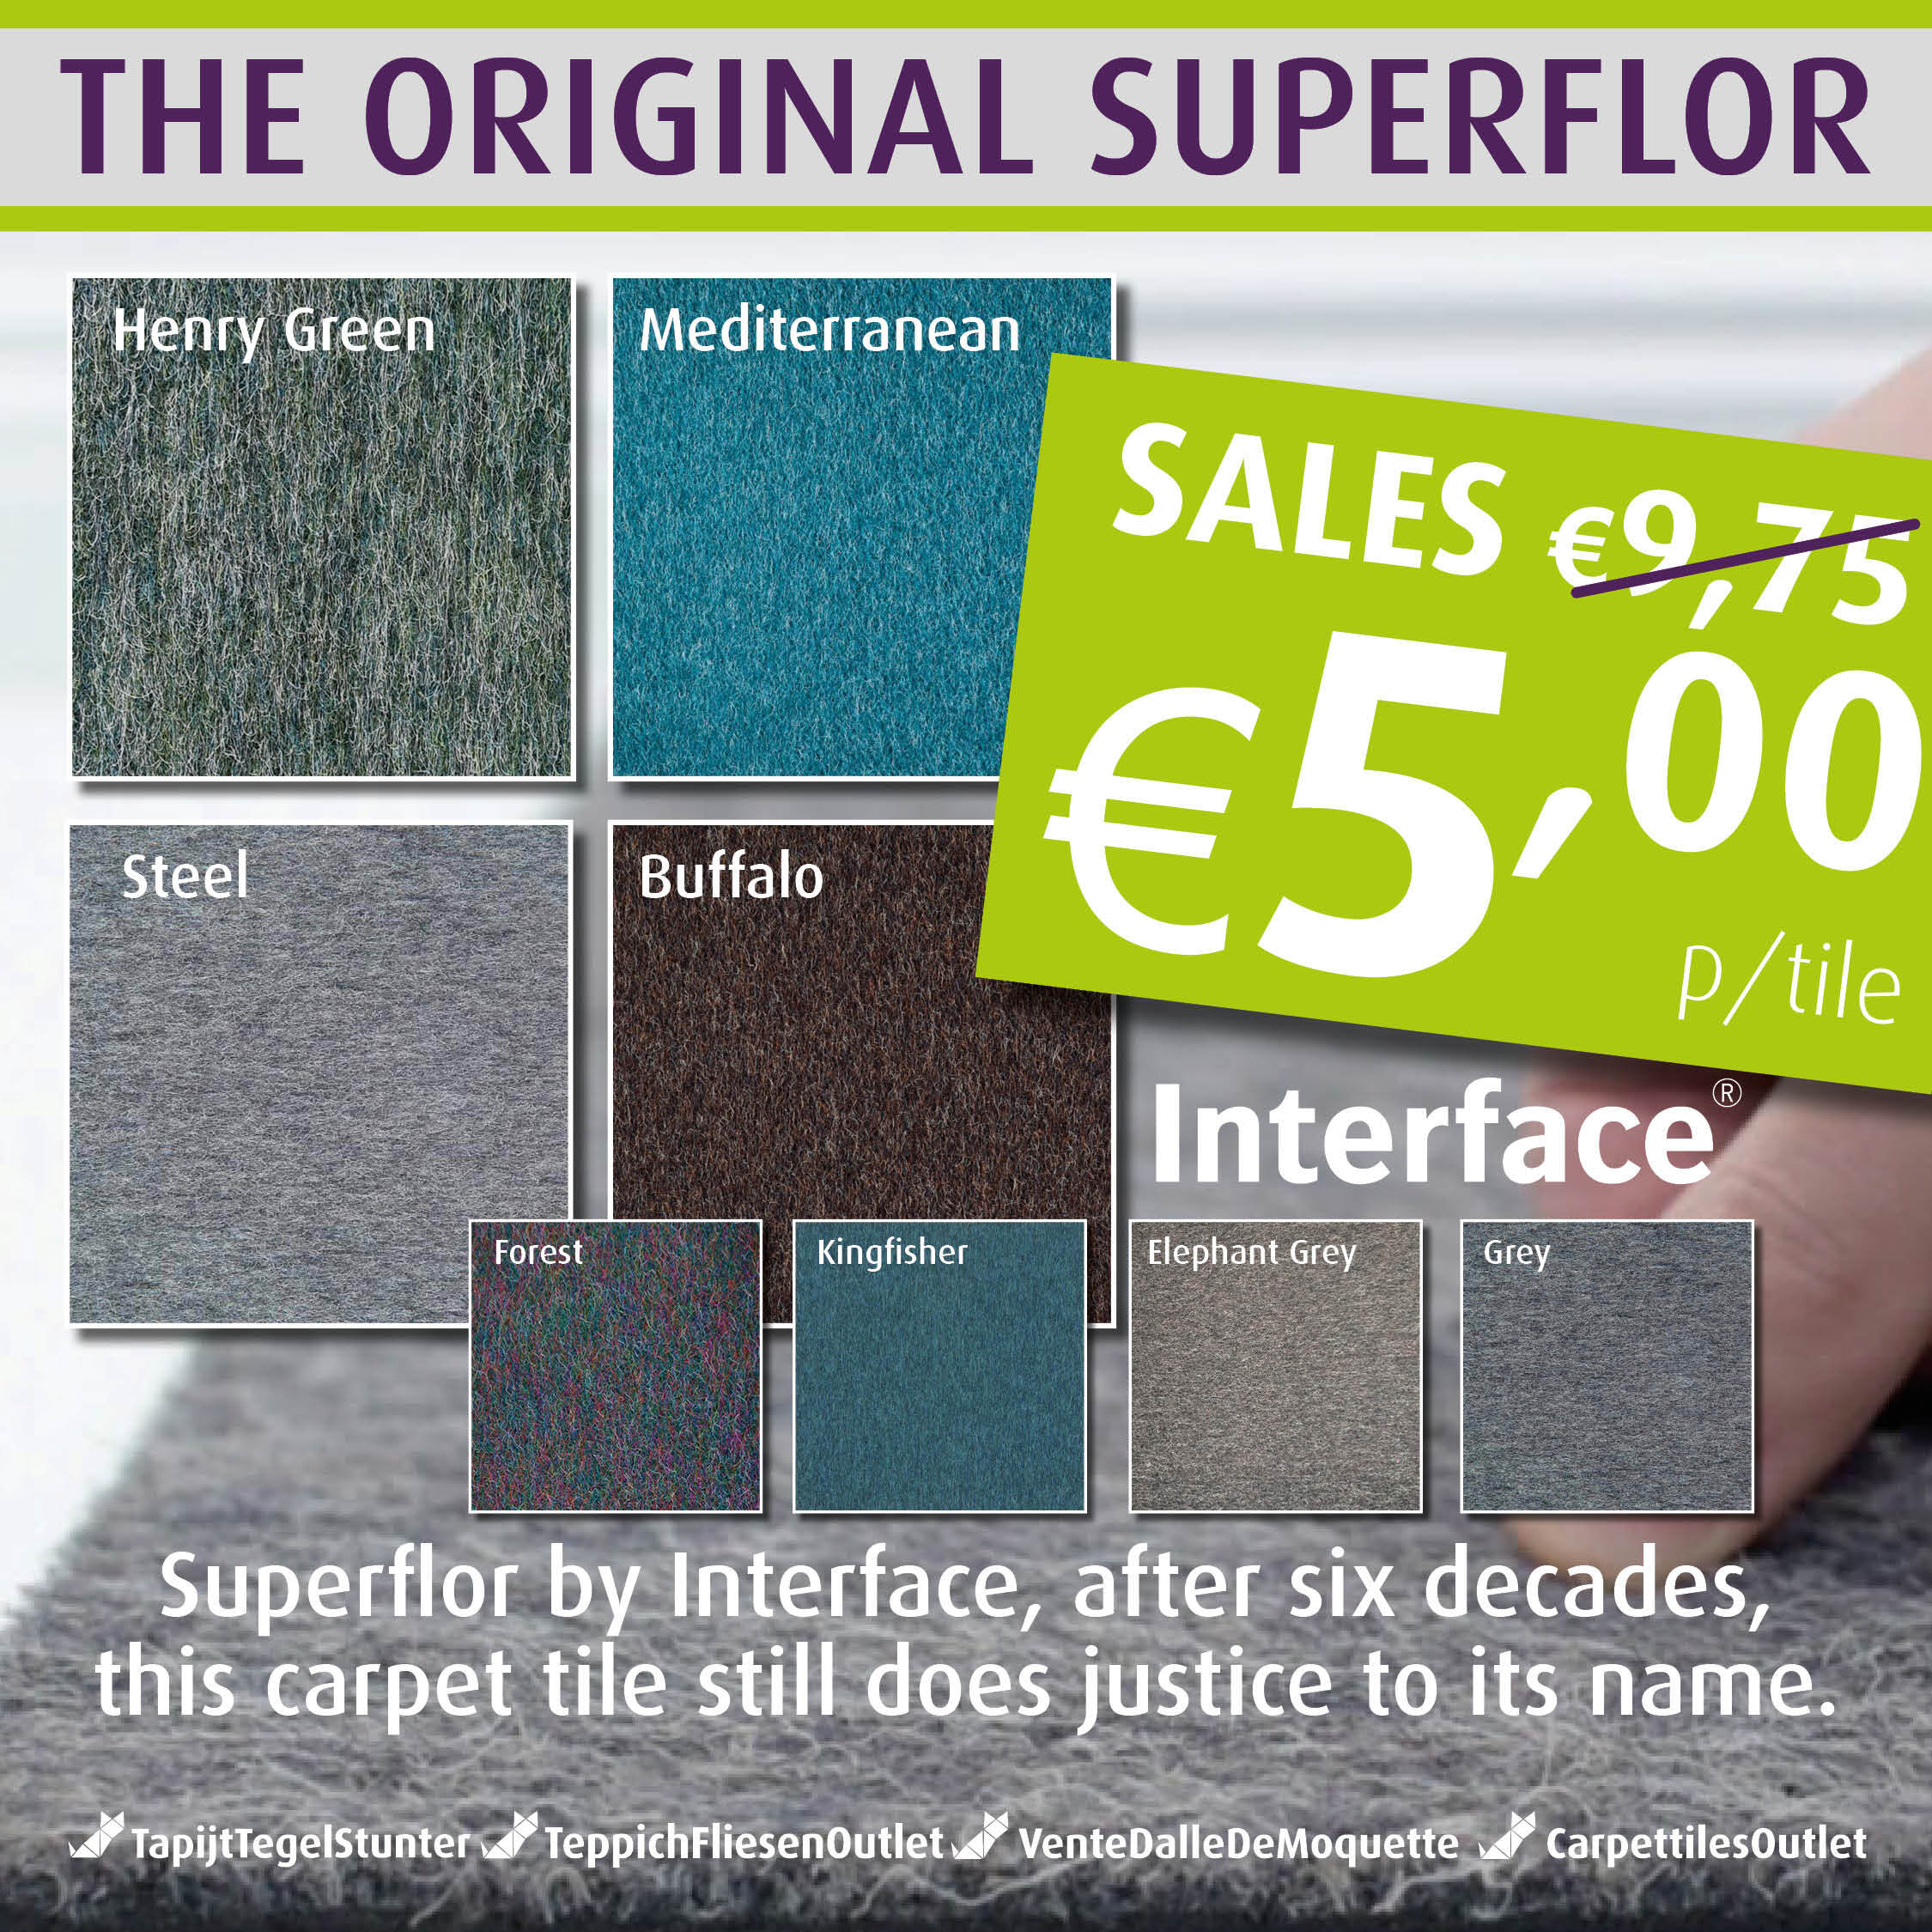 Looking for Interface carpet tiles? Superflor in the color Elephant Grey is an excellent choice. View this and other carpet tiles in our webshop.